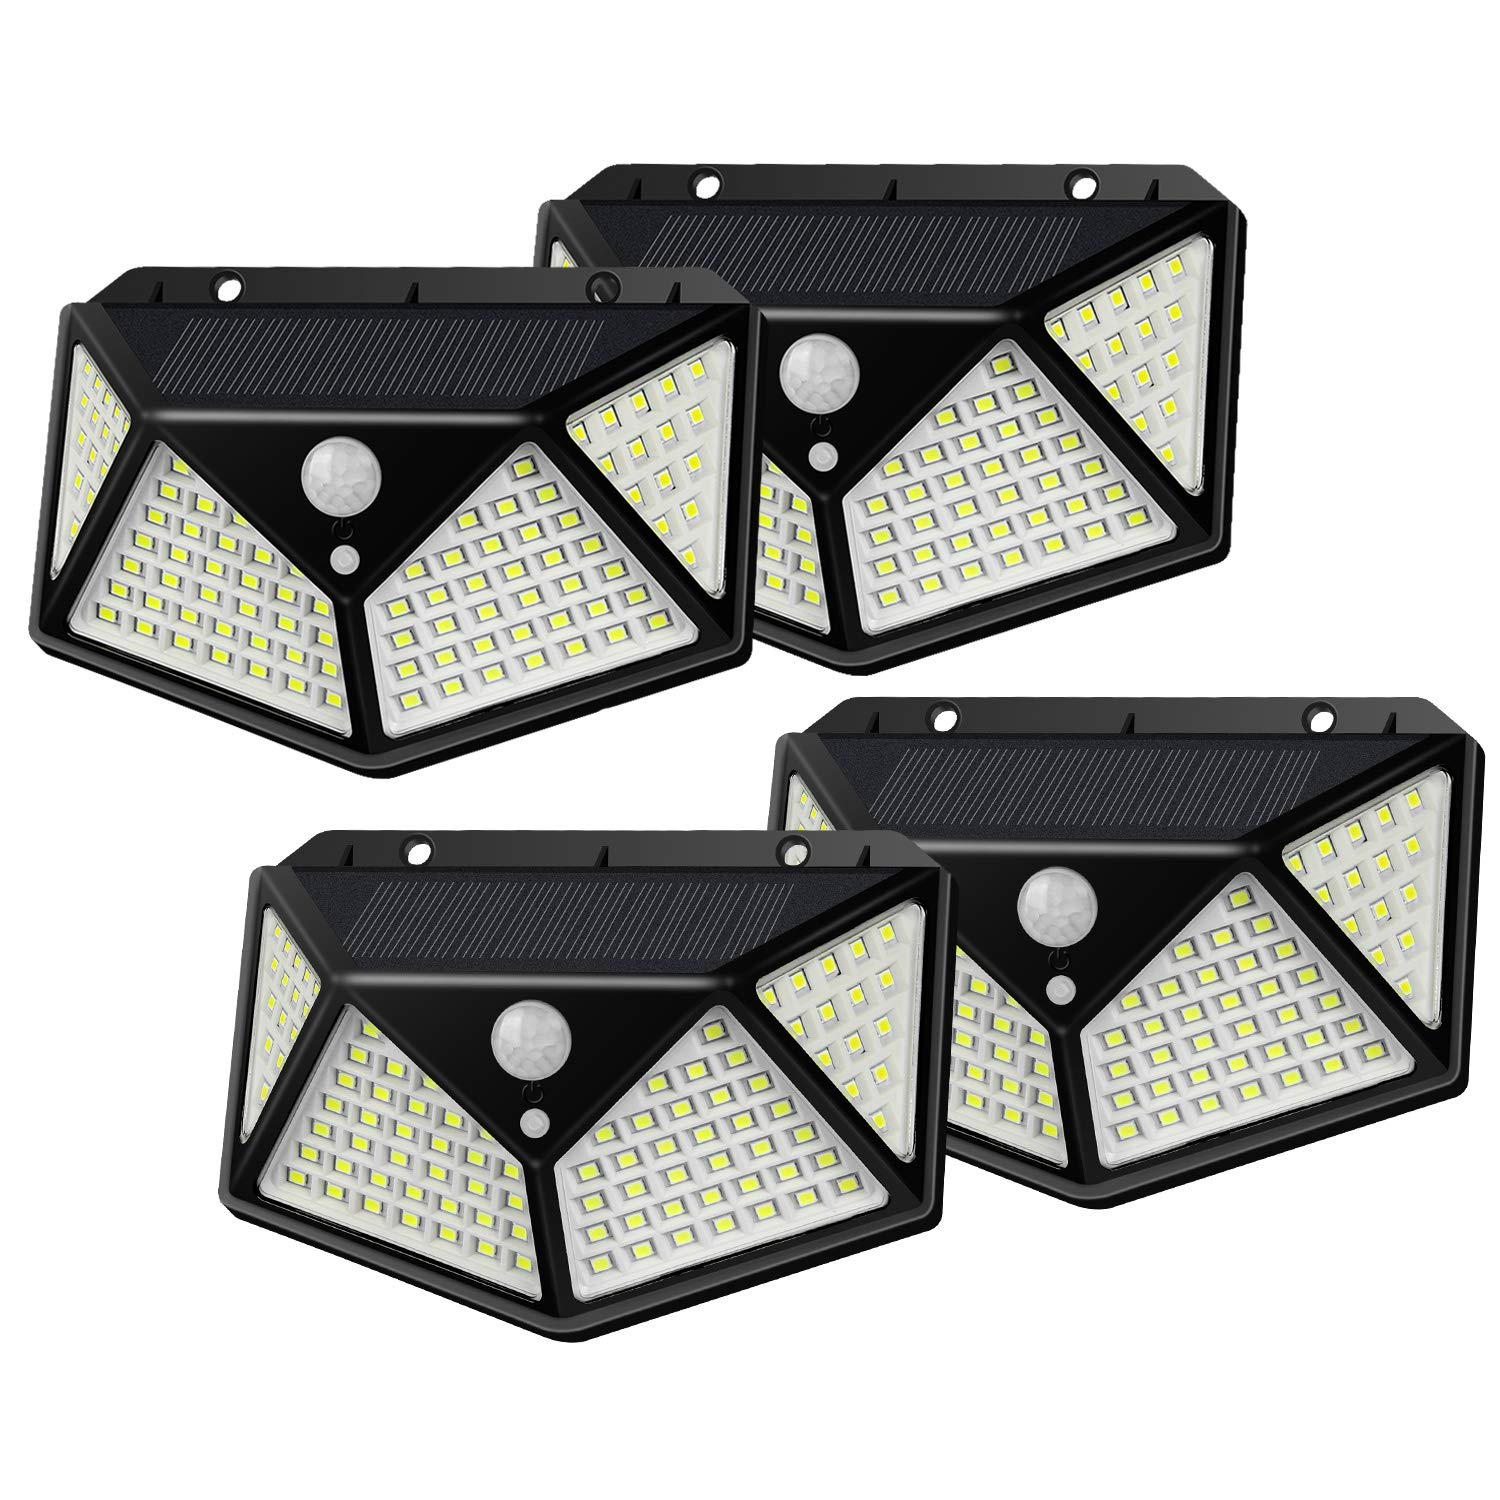 Solar Lights, 2019 New Security Wall Light with 100 LEDs, 270°Wider Angle, 120°& 17Ft RIP Motion Sensor Light, IP65 Waterproof & Dustproof, 3 Working Mode for Front Door, Garage, Patio,Pack of 4